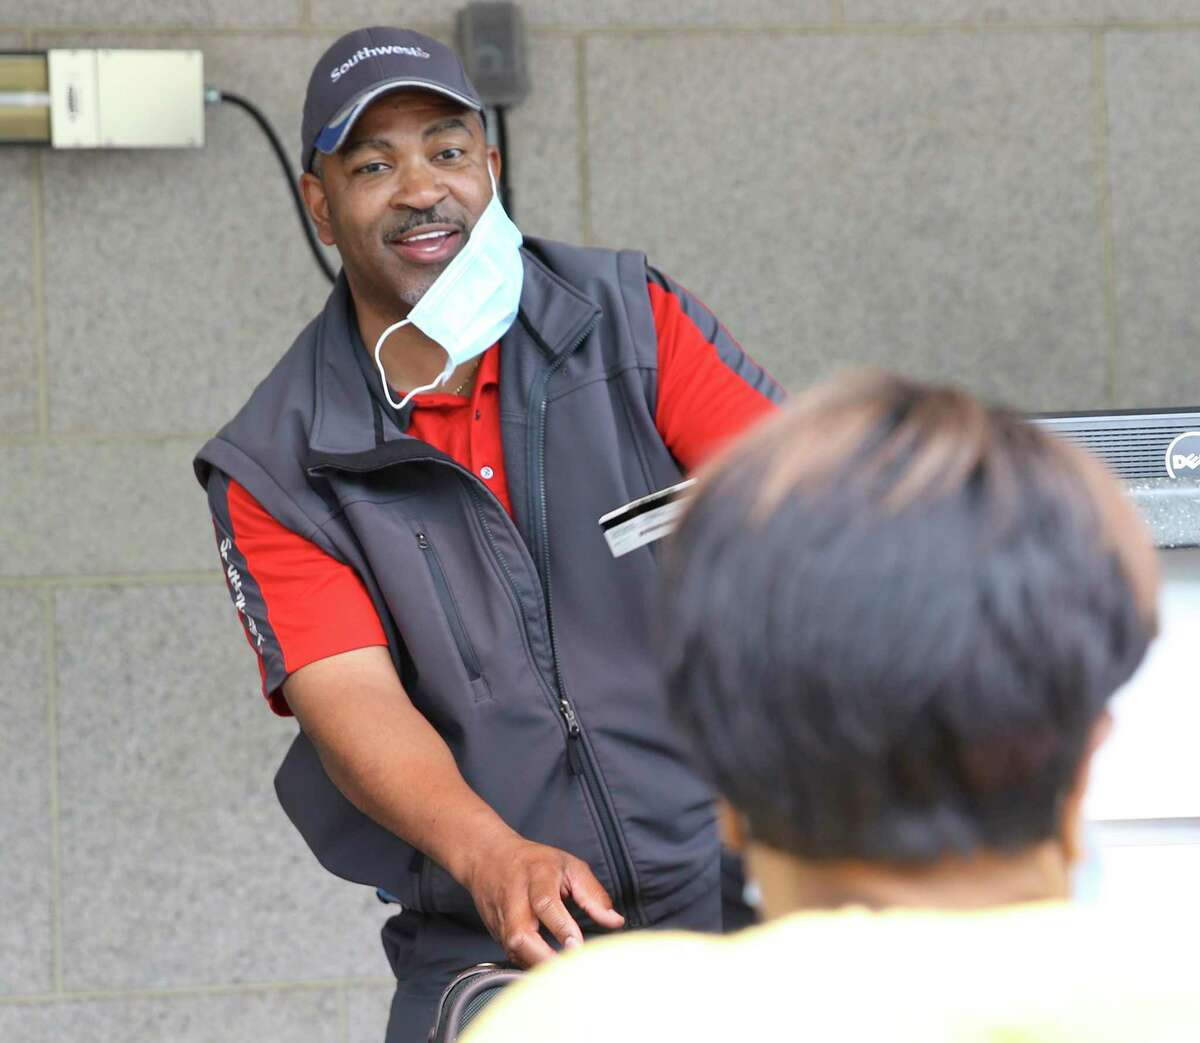 """For more than 20 years Skycap Herb Watts, nicknamed """"Herb on the Curb,"""" has brightened many passengers' day with a smile as he hefted their luggage for their flights on Southwest Airlines. On Thursday, May 7, 2020, Watts was seen helping an elderly passenger with her bags and boarding passes for her flight."""